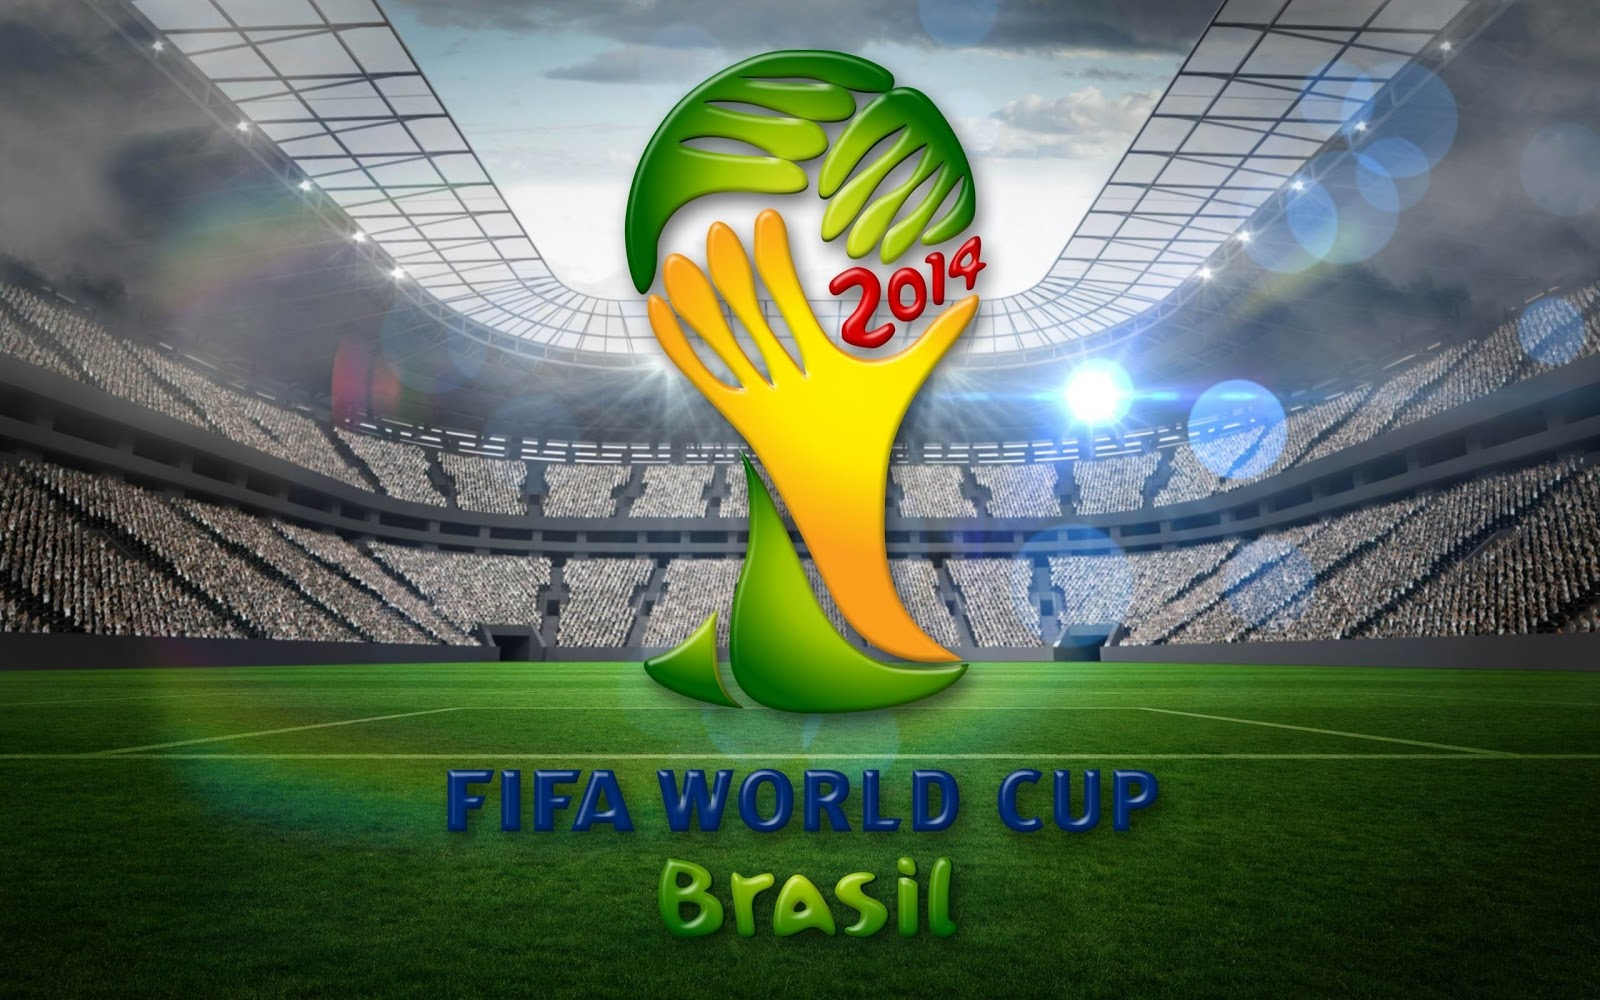 2014 Brazil 20th FIFA World Cup